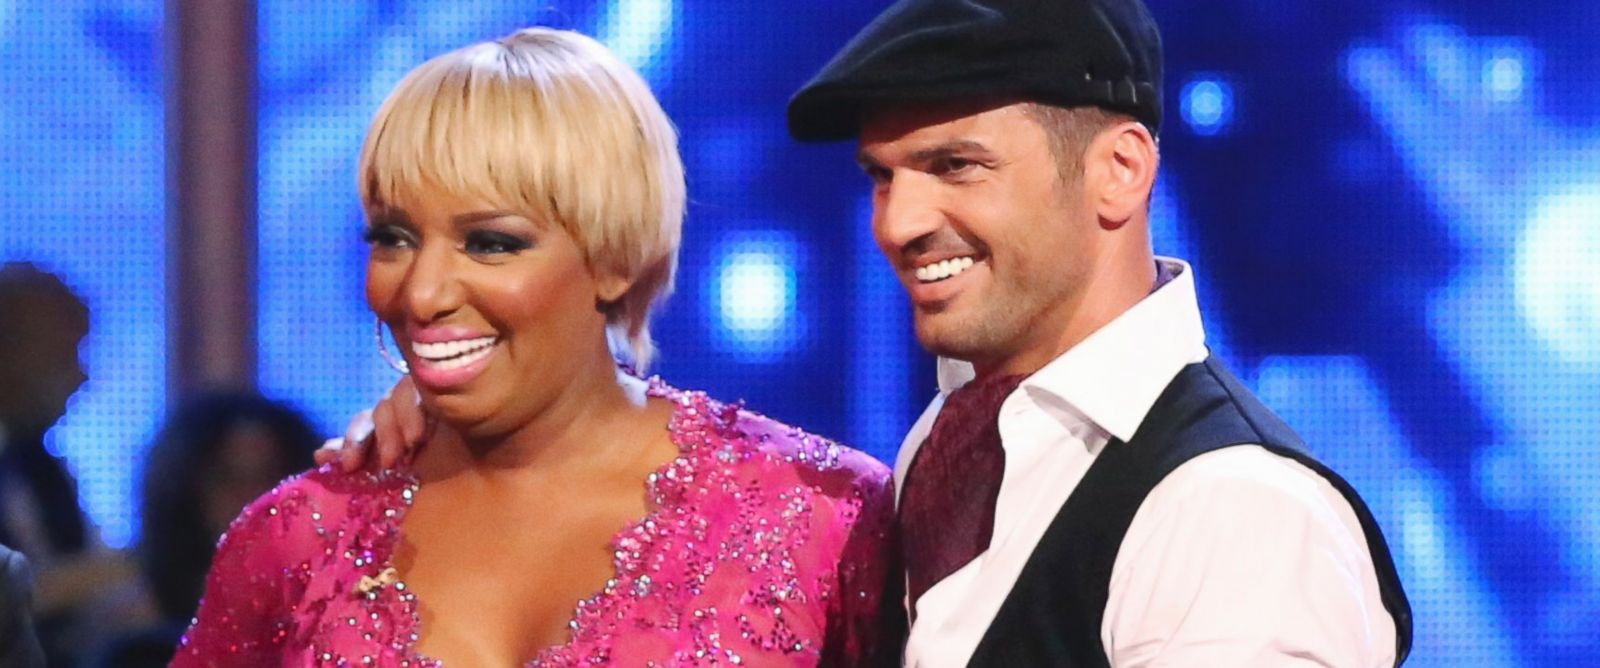 PHOTO: Nene Leakes and Tony Dovolani on Dancing with the Stars